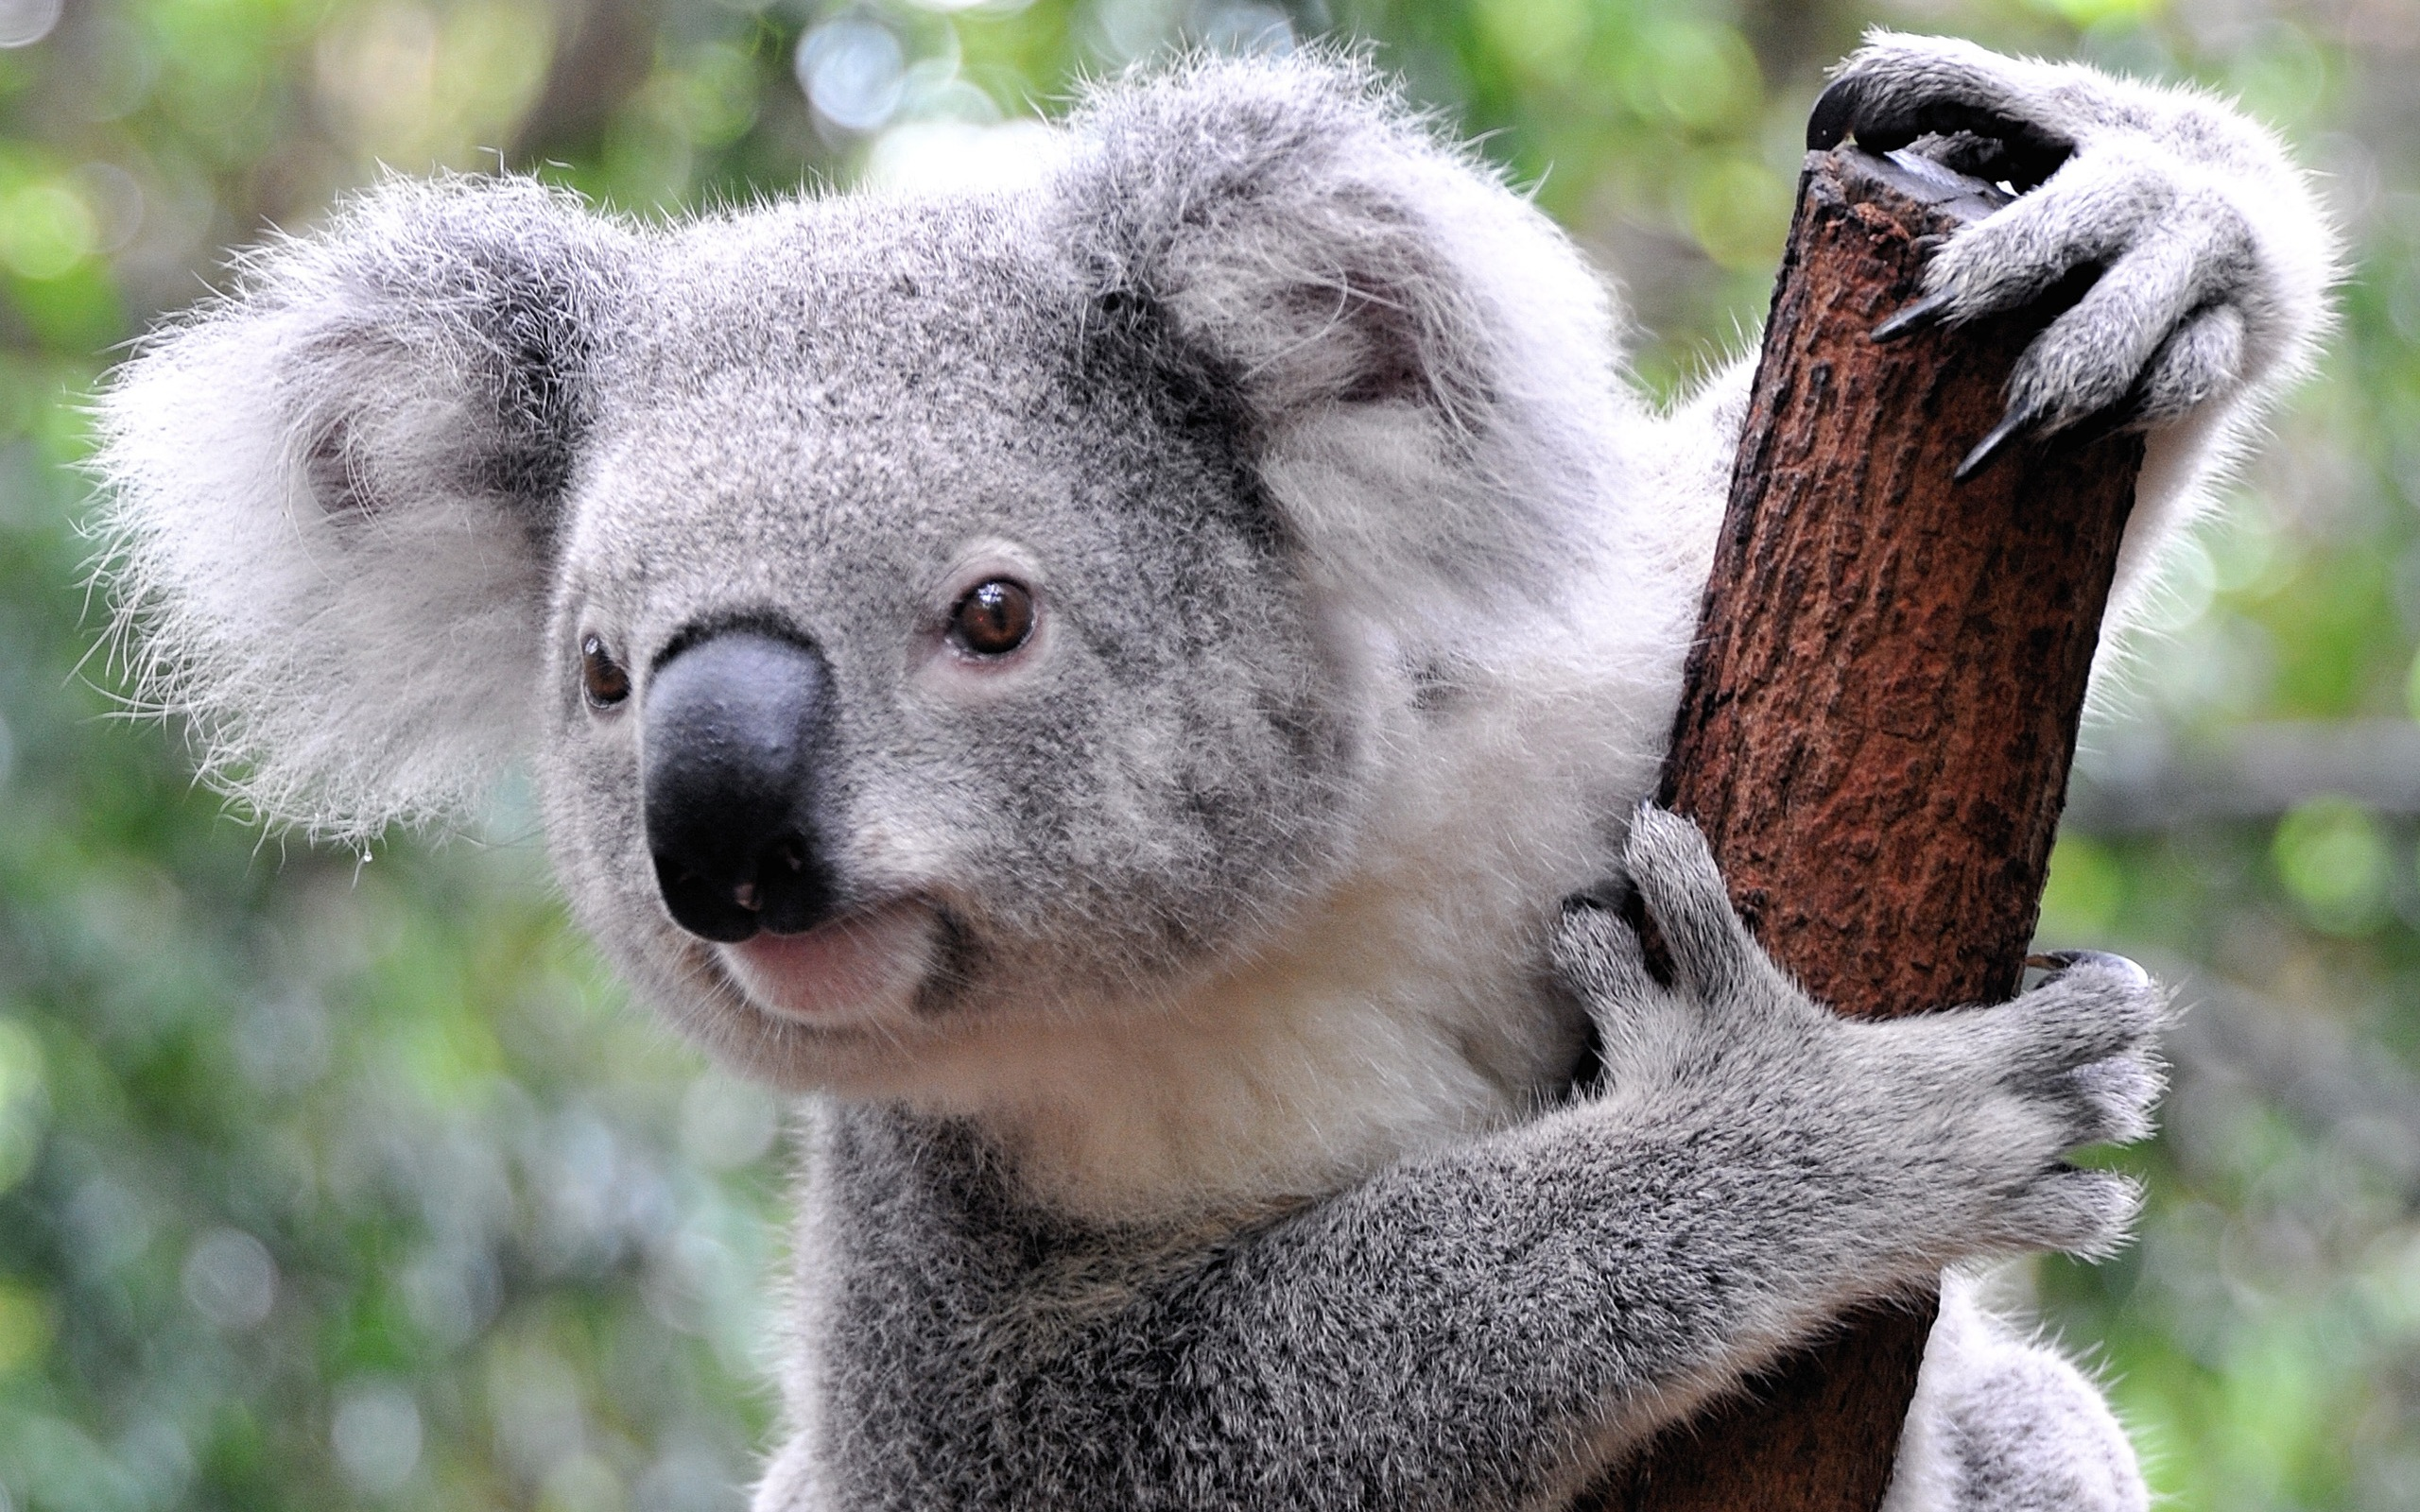 Tag: HQ Definition Koala Wallpapers, Backgrounds and Pictures for Free, Dede Haines